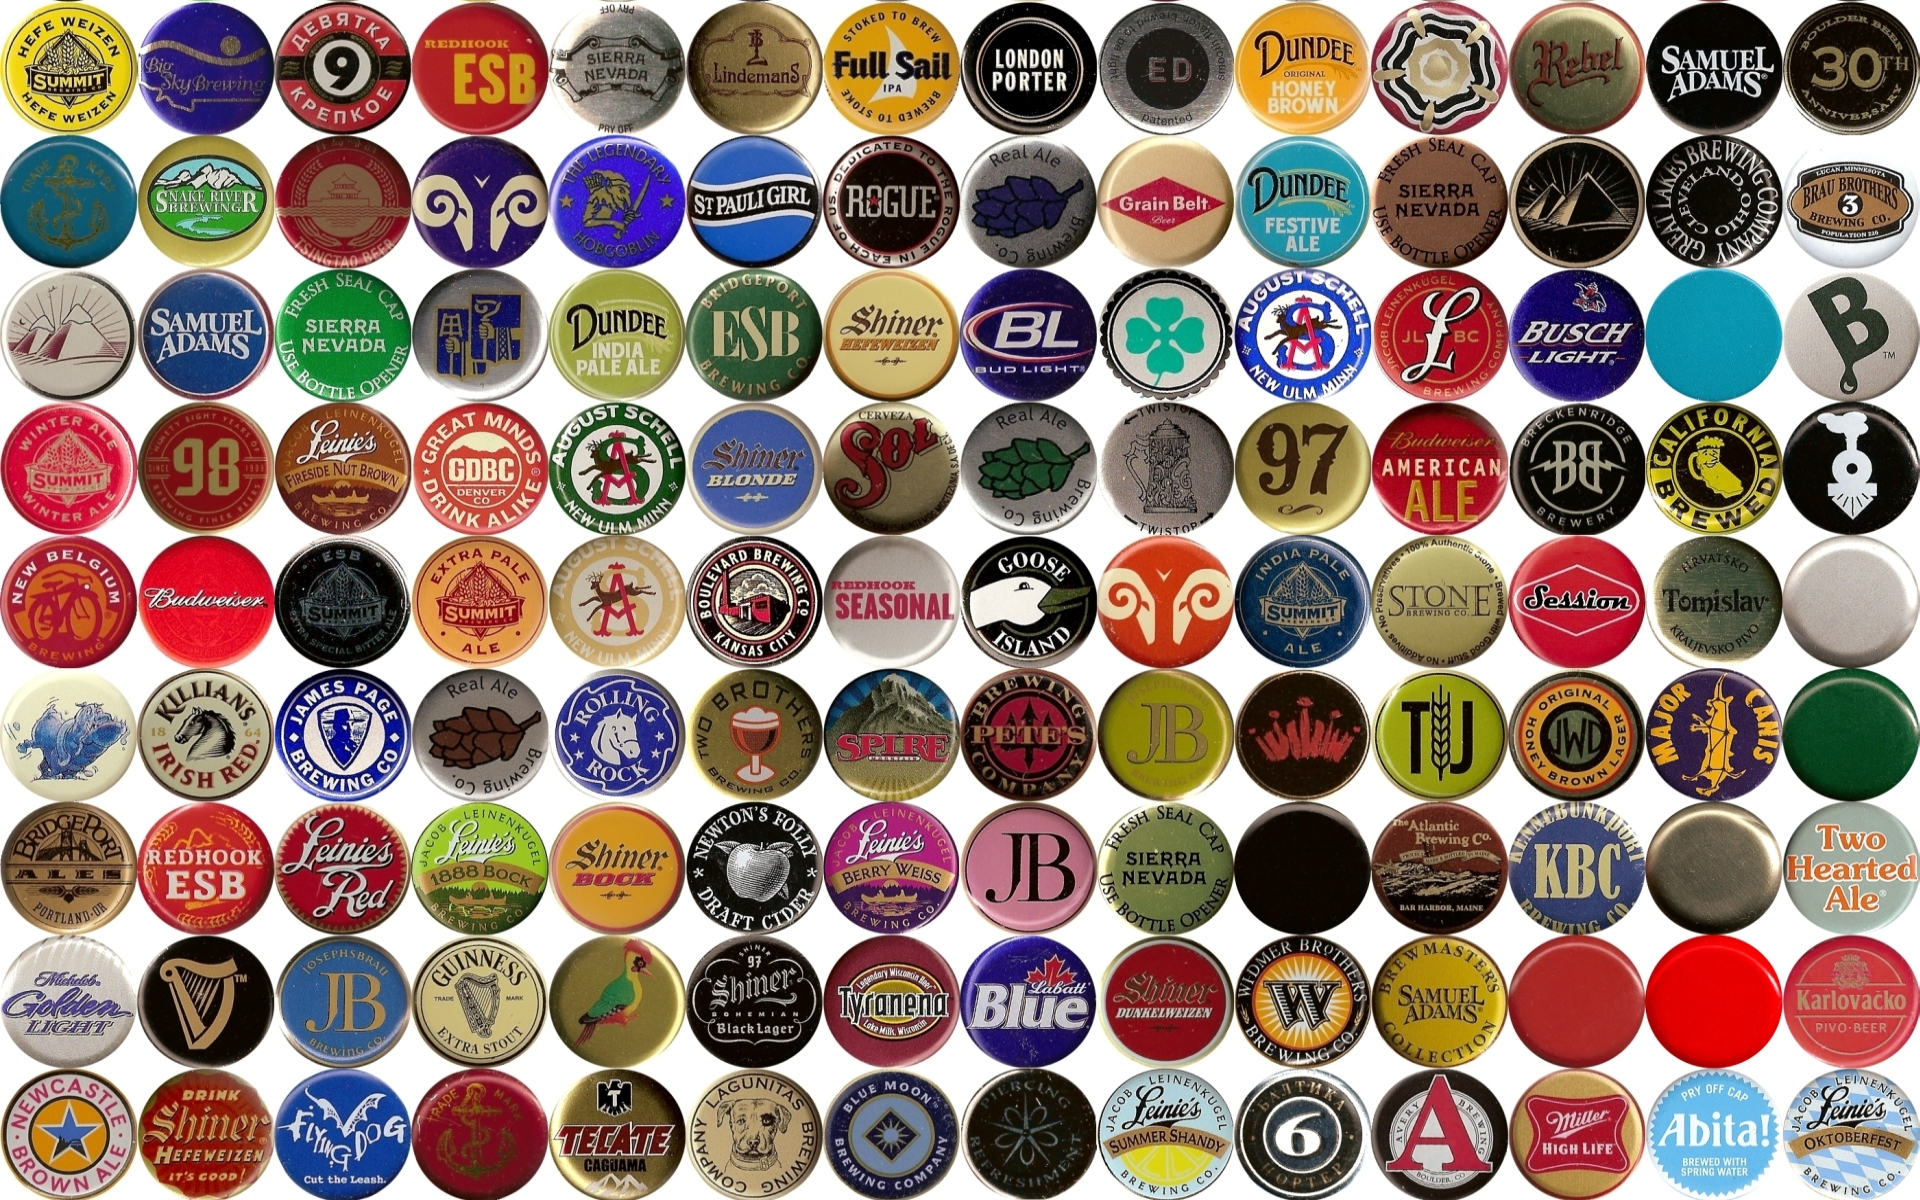 53 beer bottle caps hd wallpapers backgrounds for Bottle cap wall